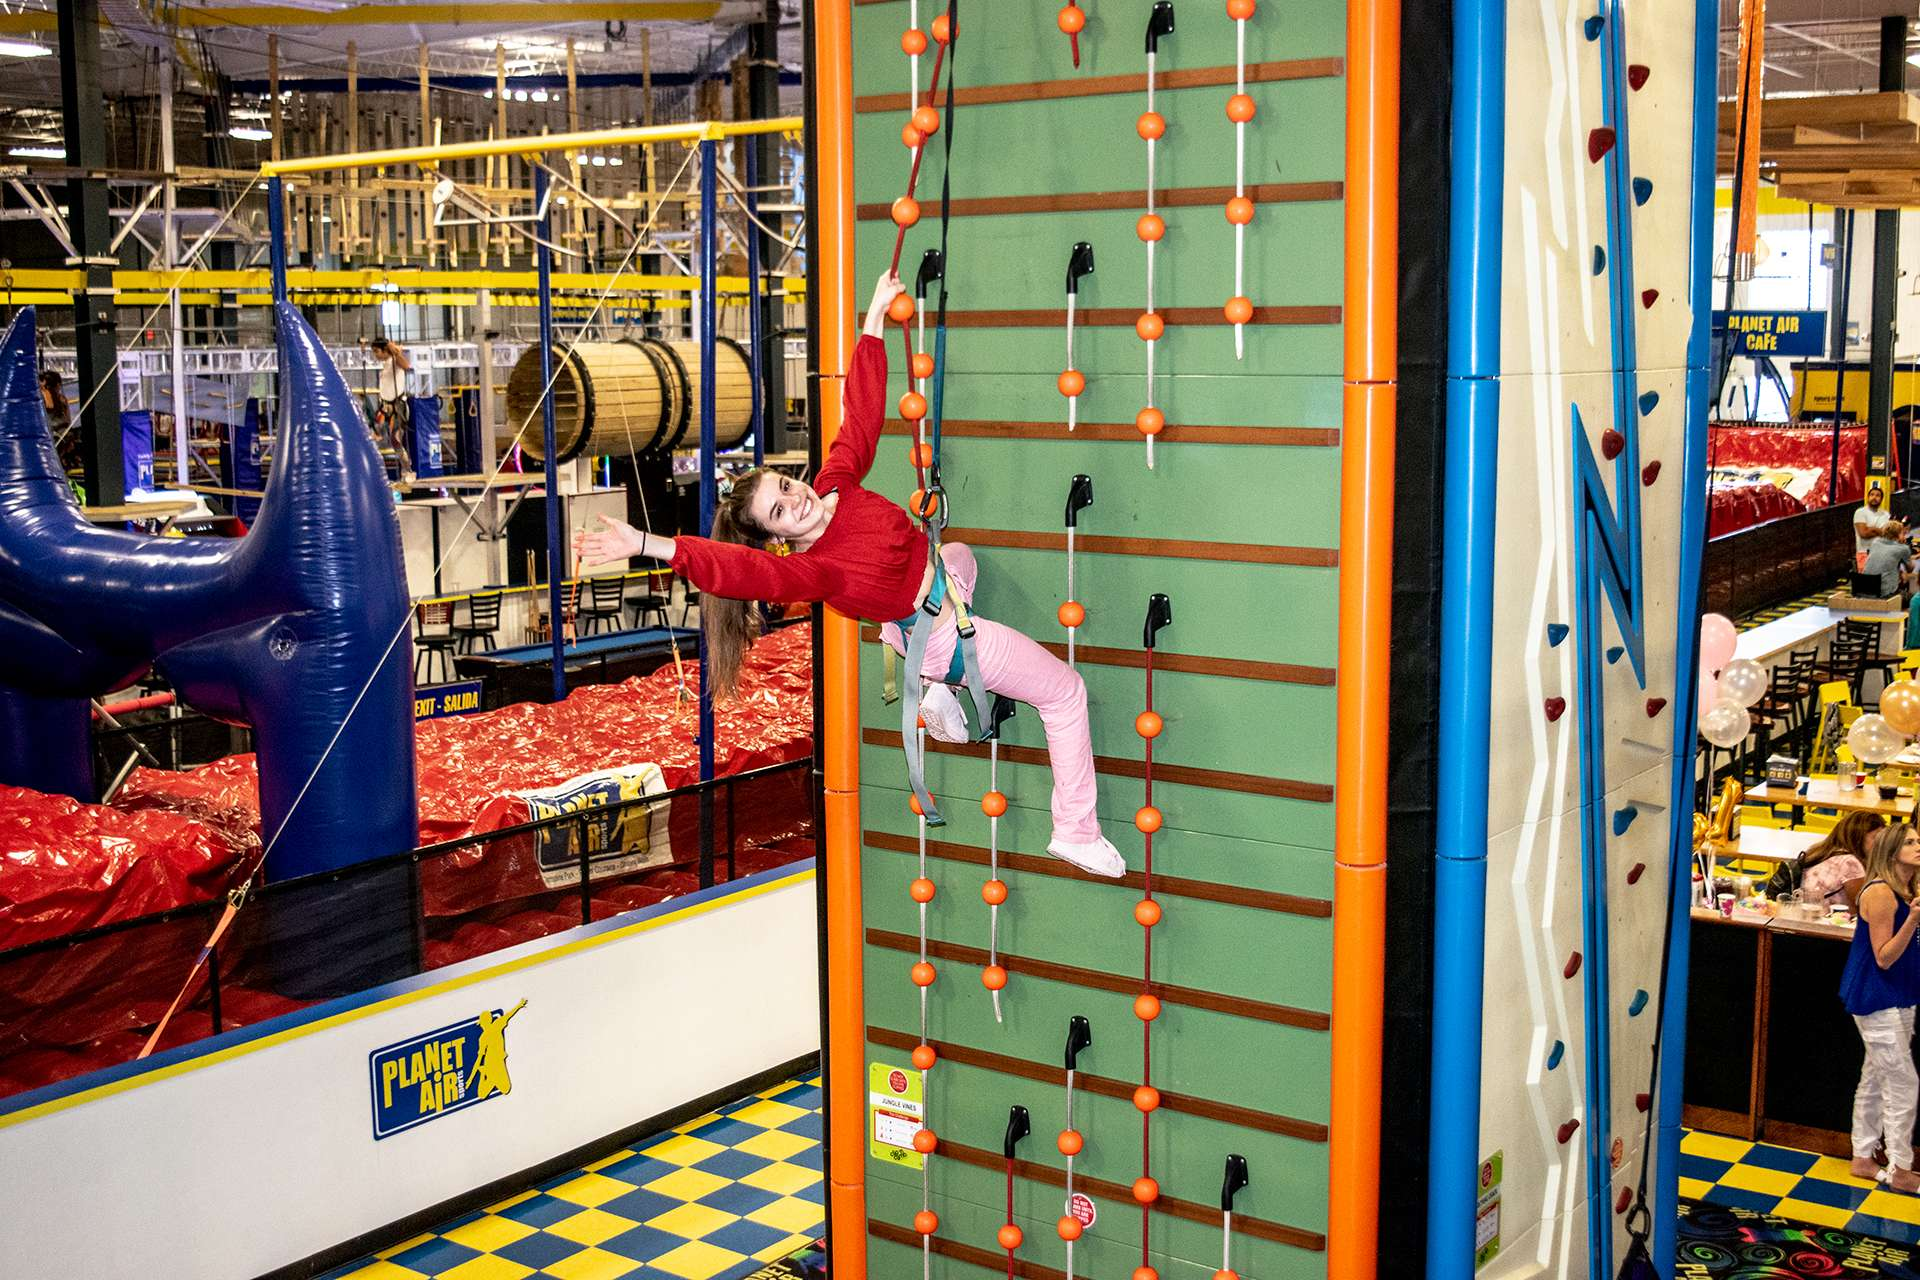 Fun indoor attractions Doral for the family I Planet Air Sports